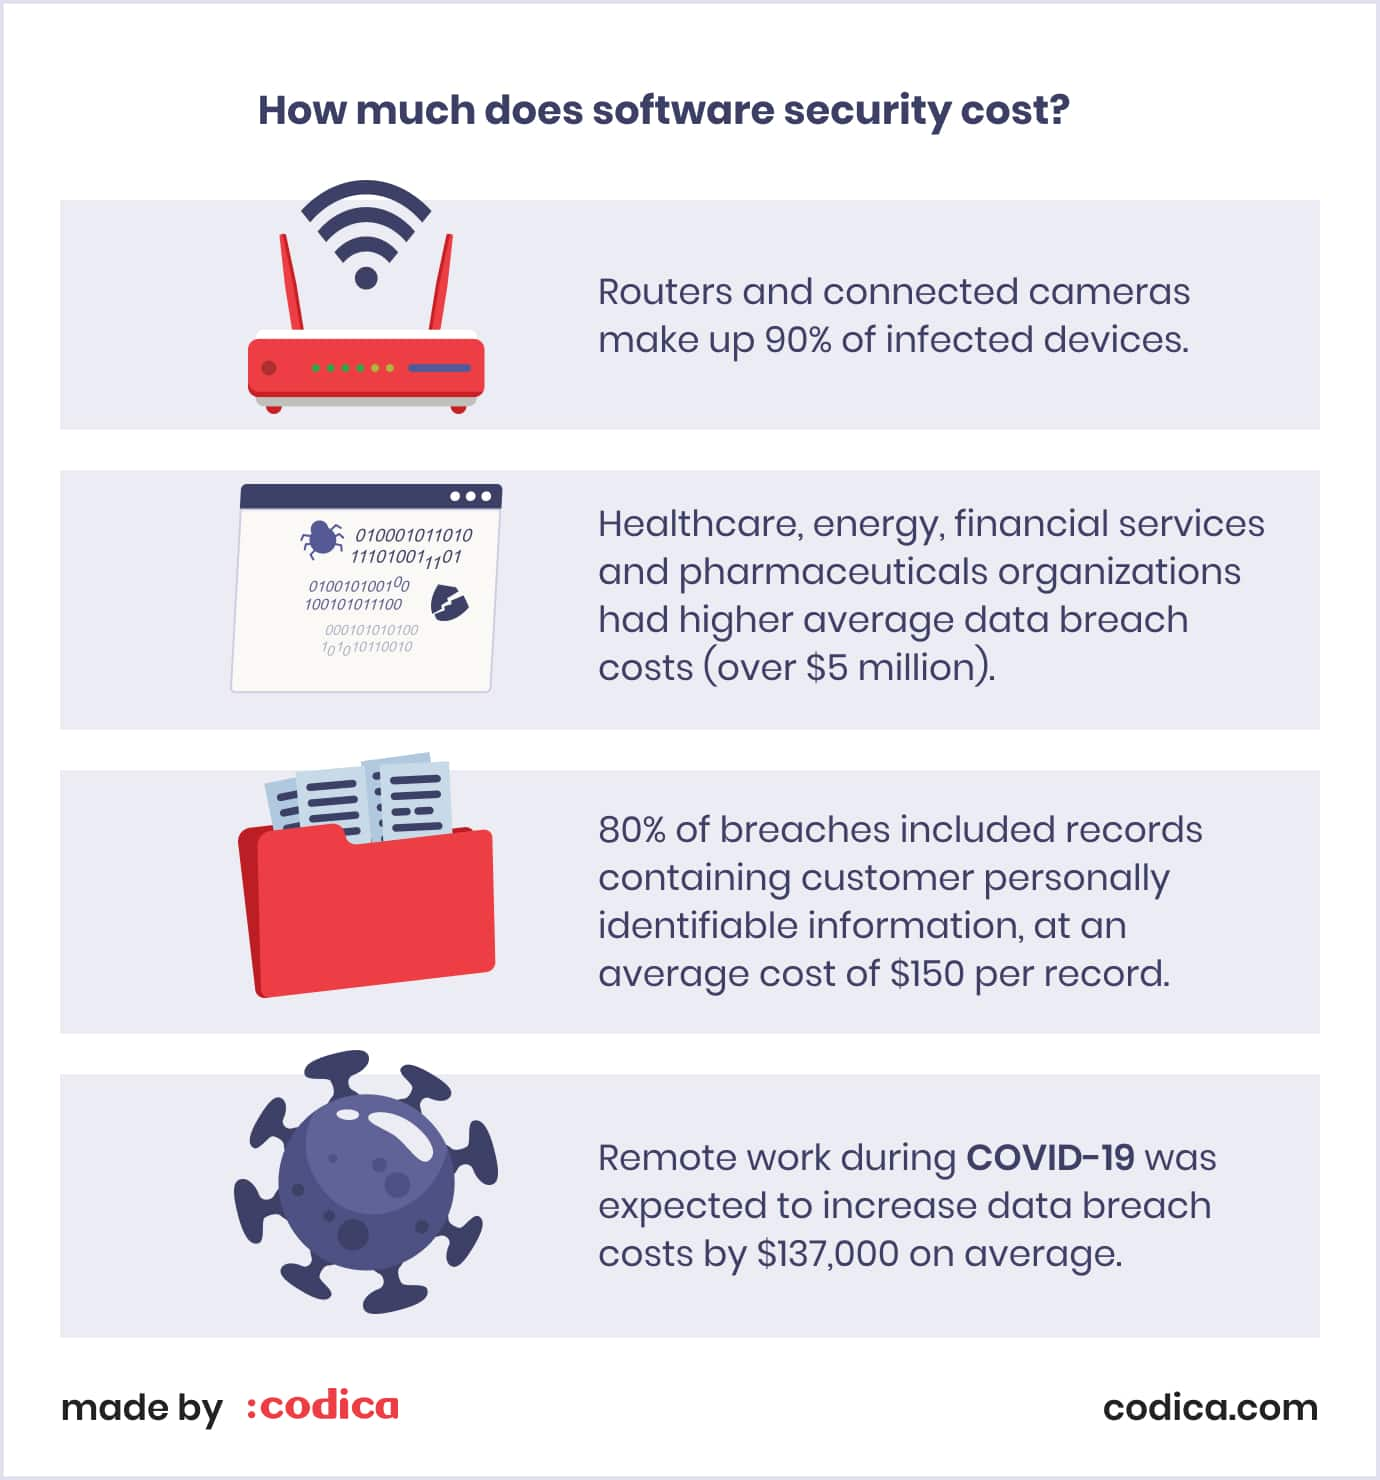 The costs of software security cost